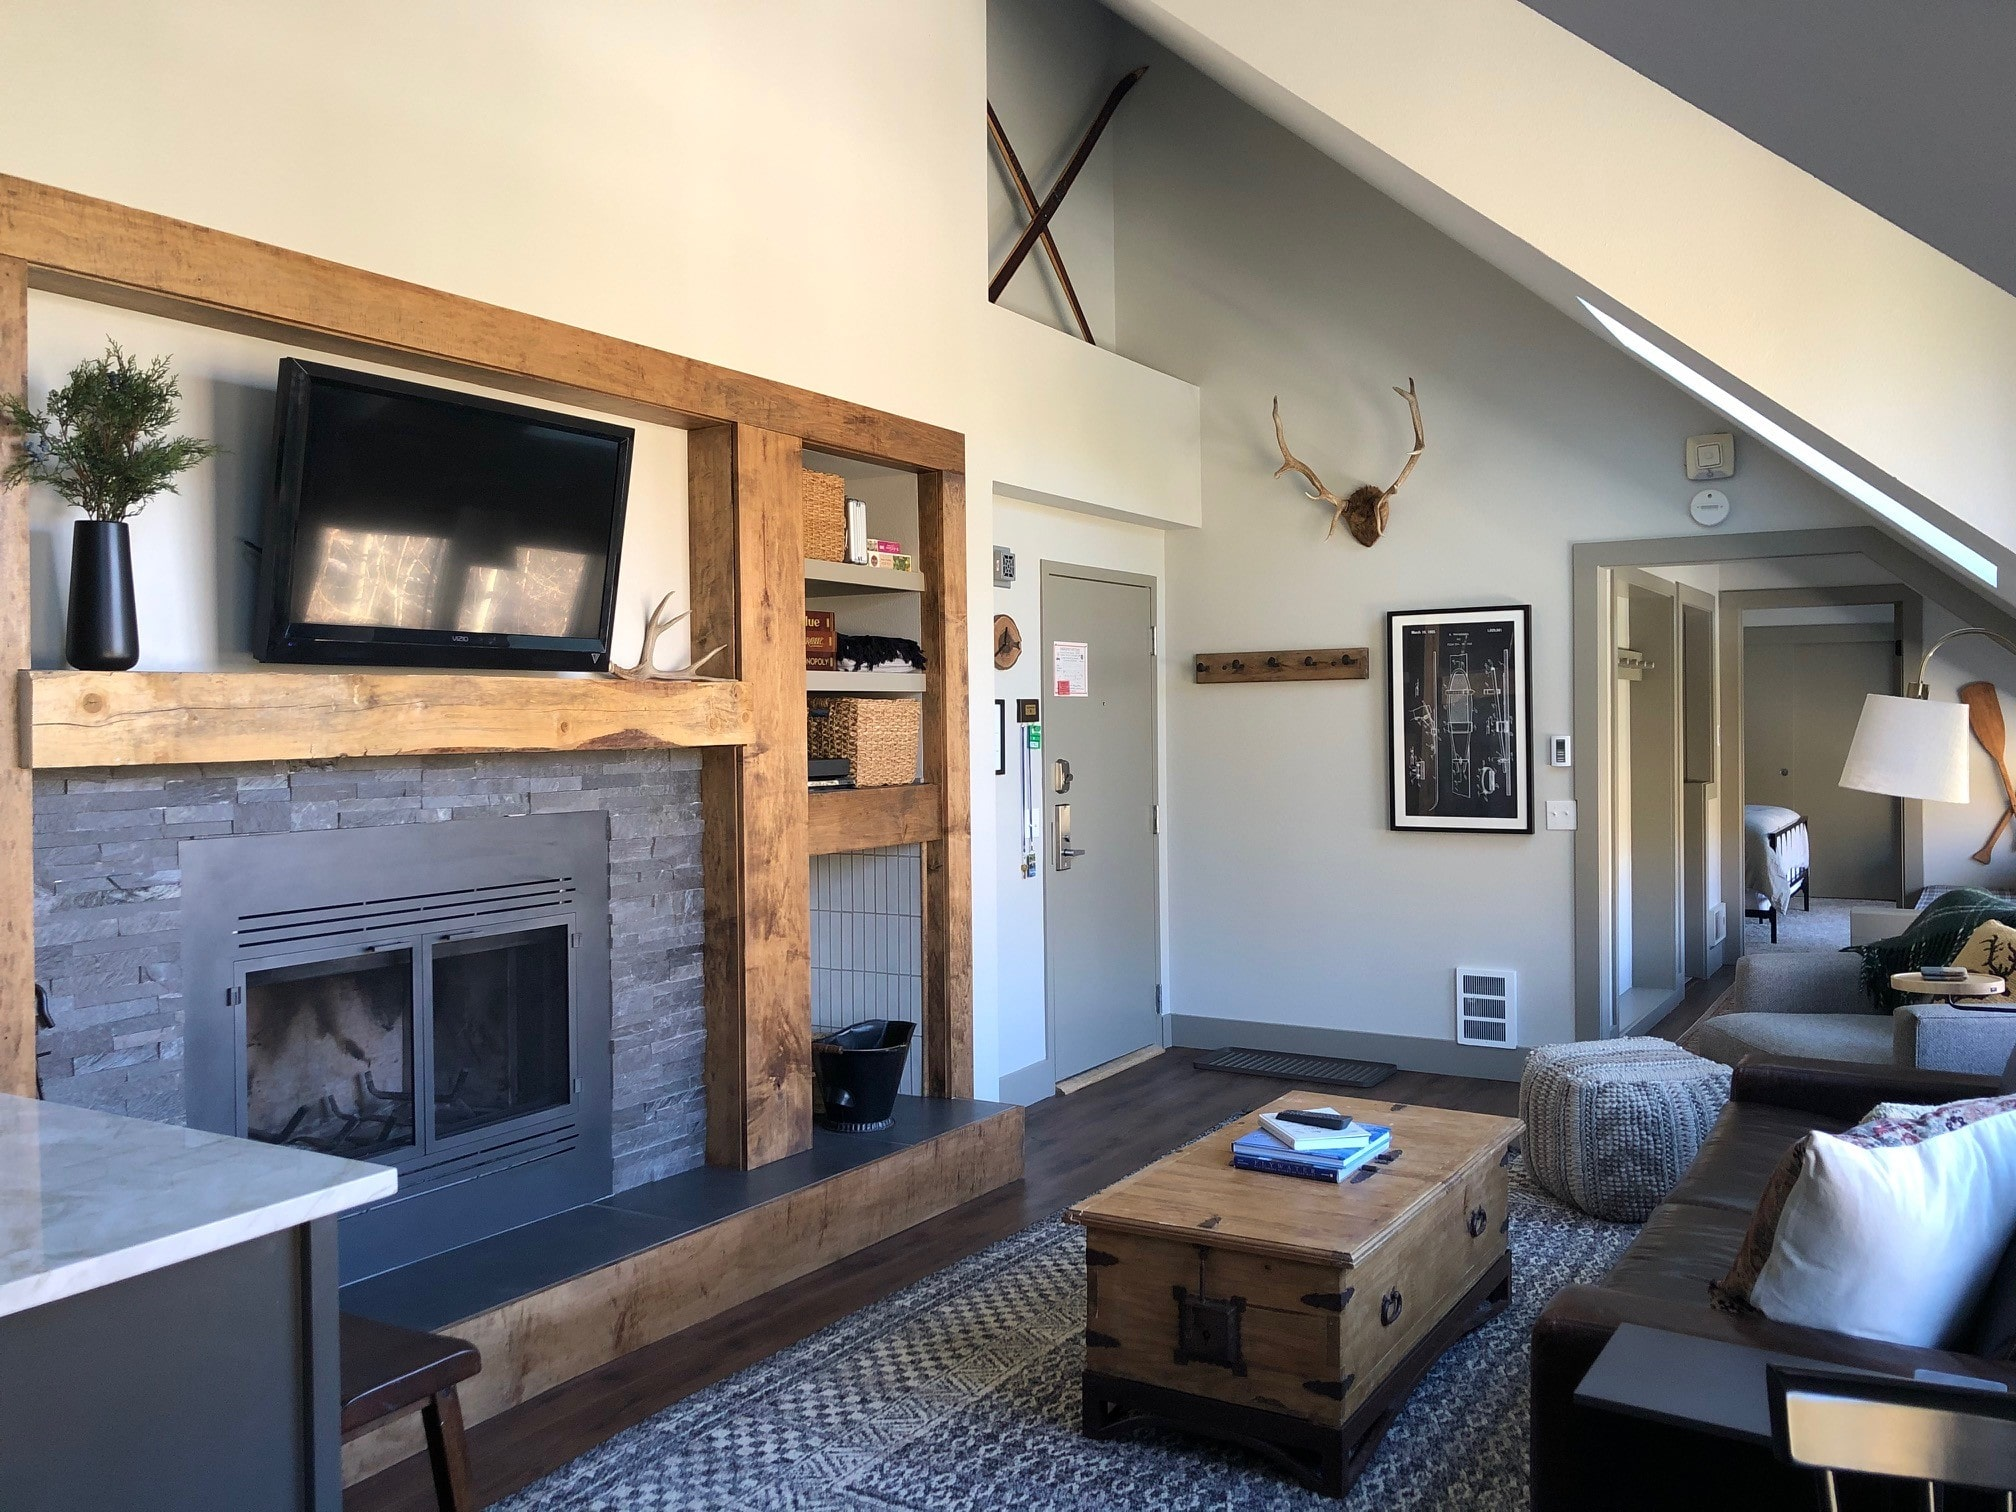 Norstone Charcoal Rock Panels surrounding fireplace in Colorado mountain ski condo